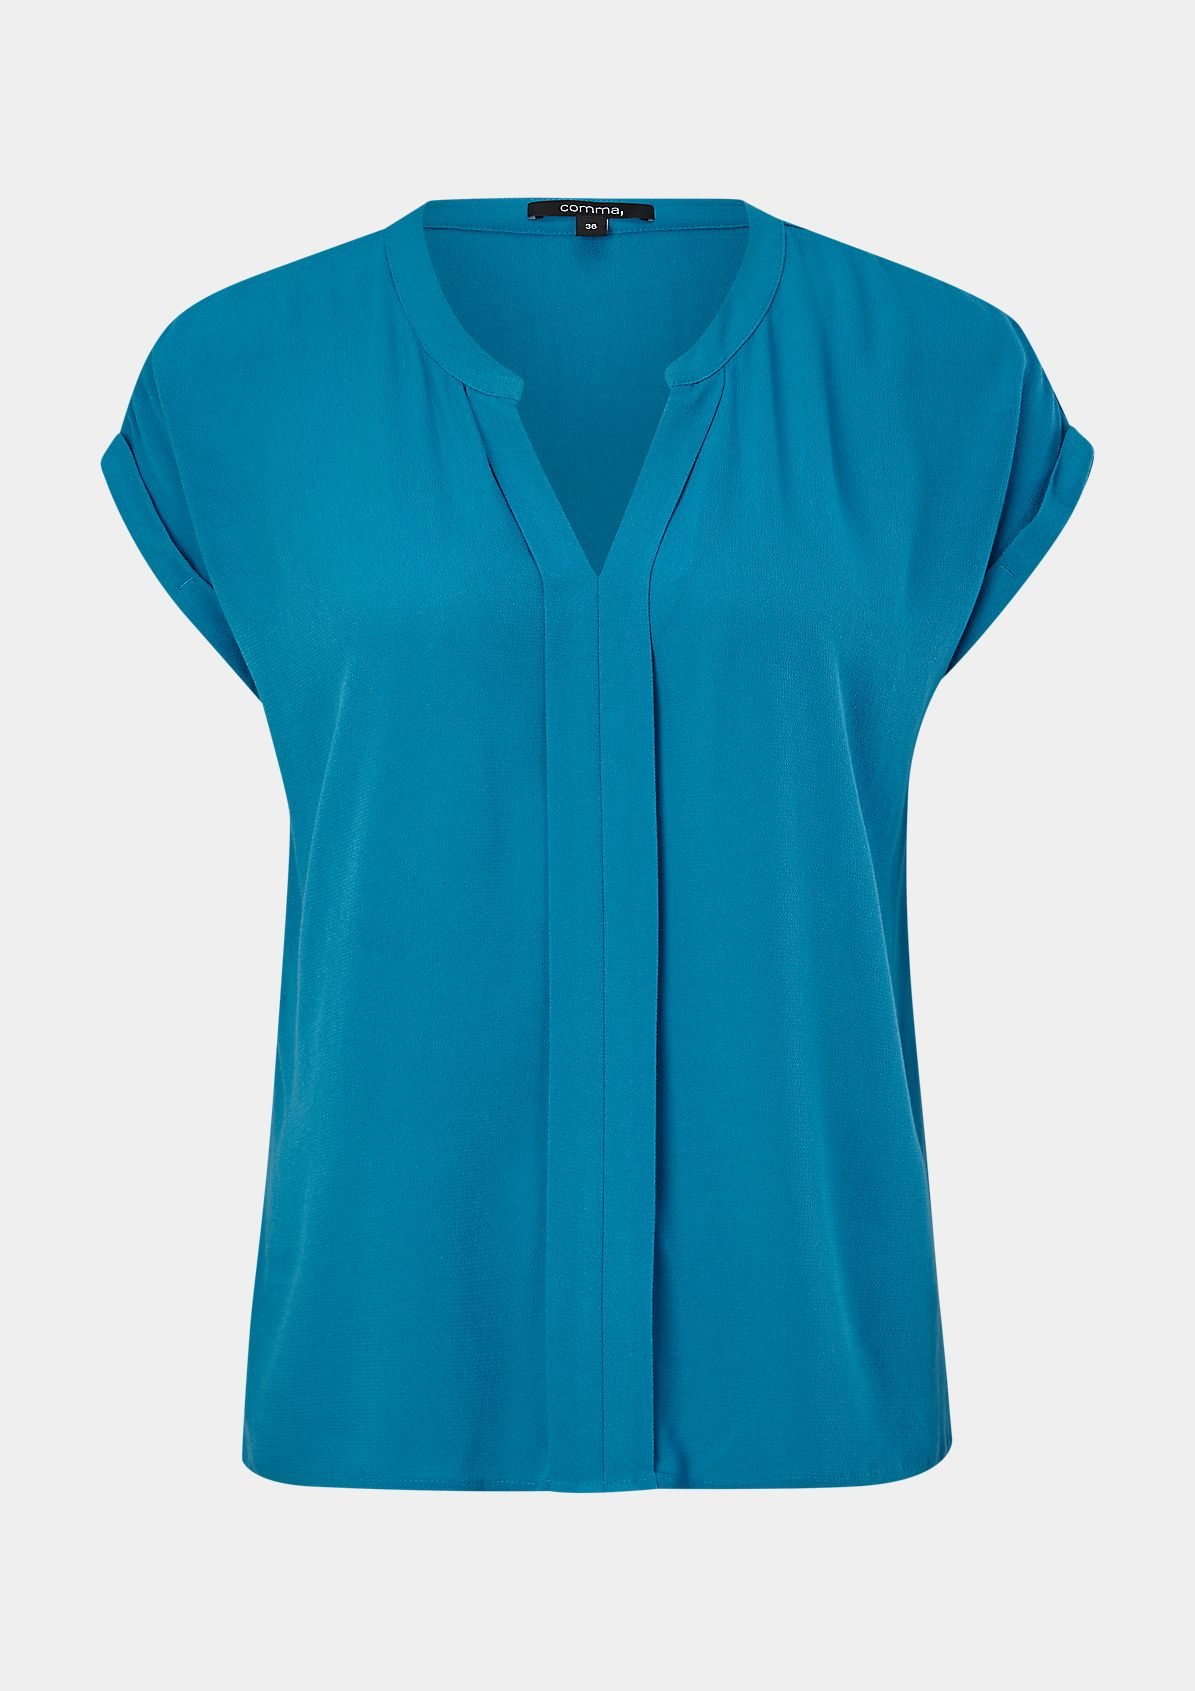 Blouse top with a decorative trim from comma